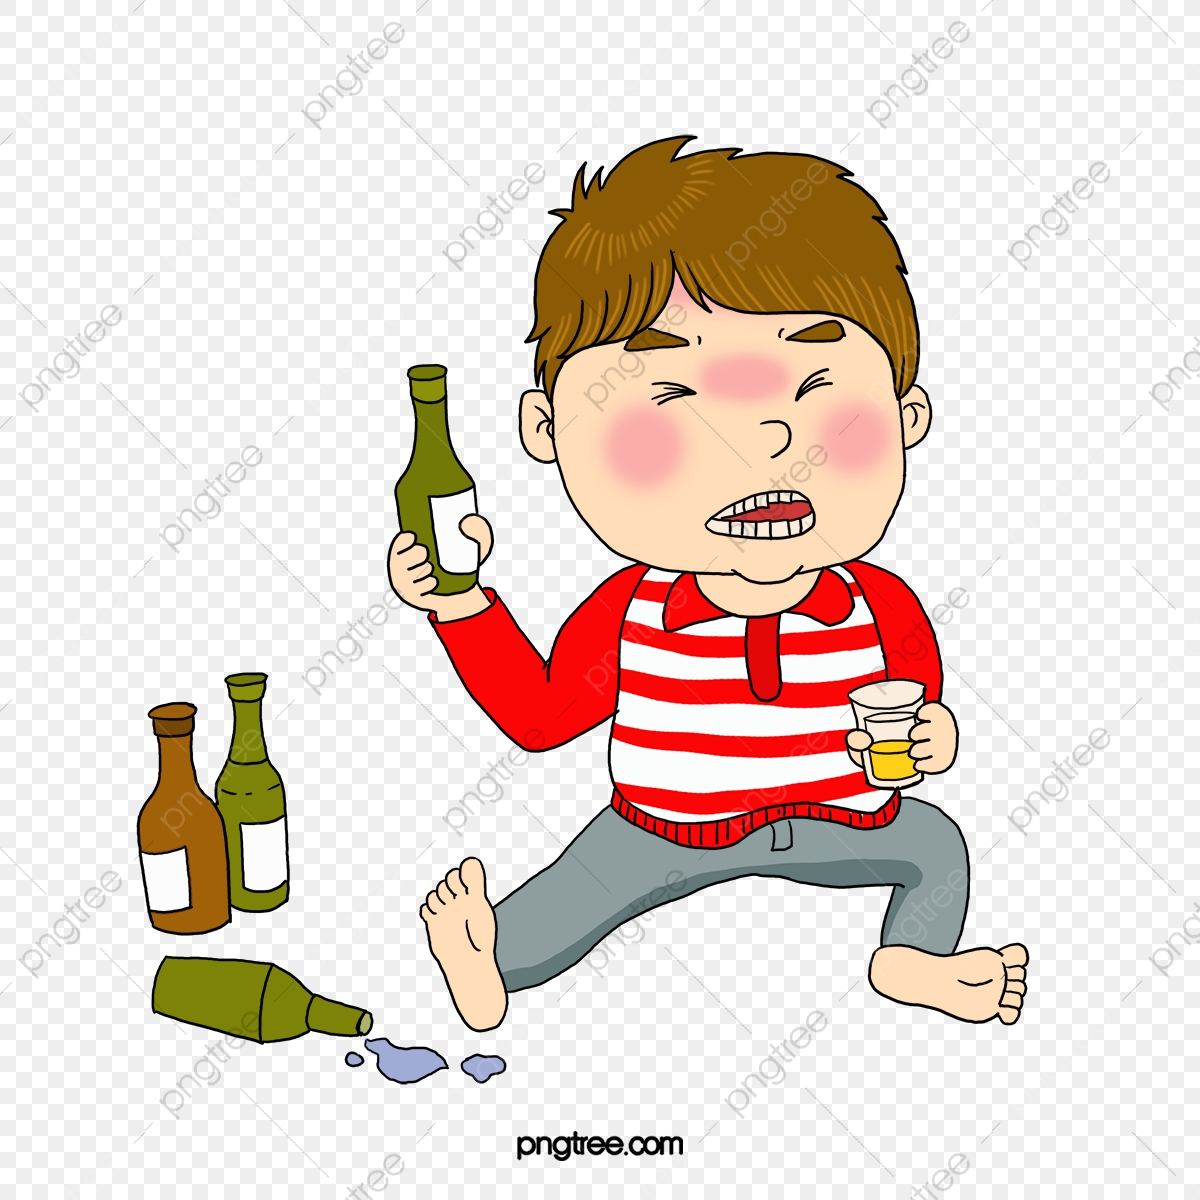 A Drunk Man, Man Clipart, Cartoon, Jane Pen PNG Transparent Clipart.